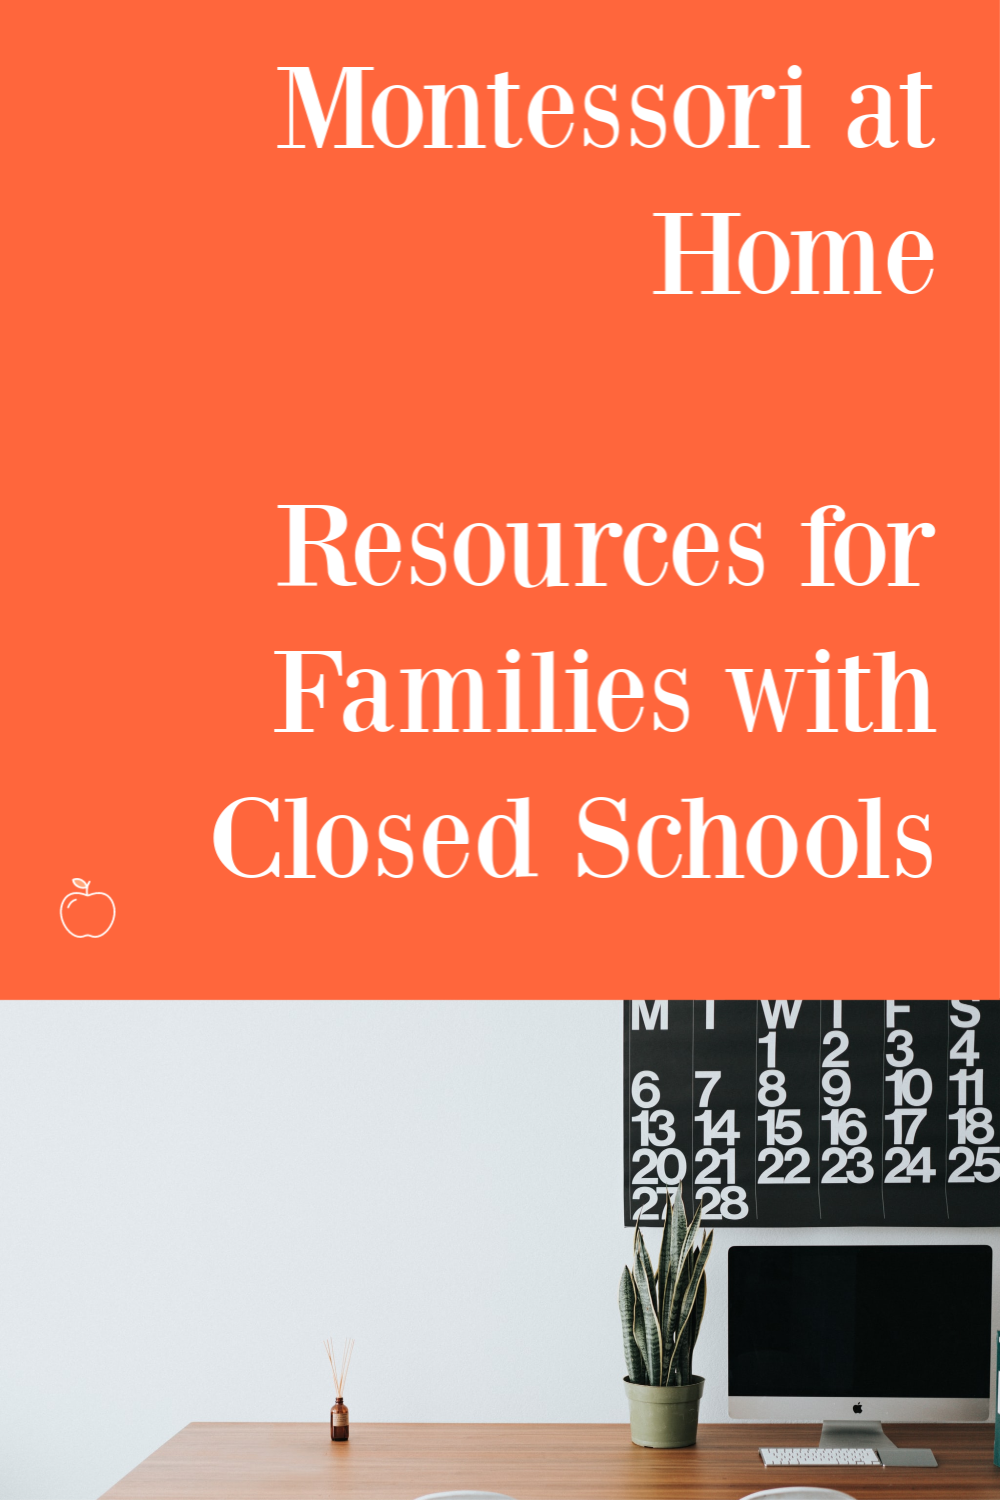 Montessori resources for families looking for activities to try with their children at home. These are great tips for how to get started with Montessori at home and how to entertain children at home.